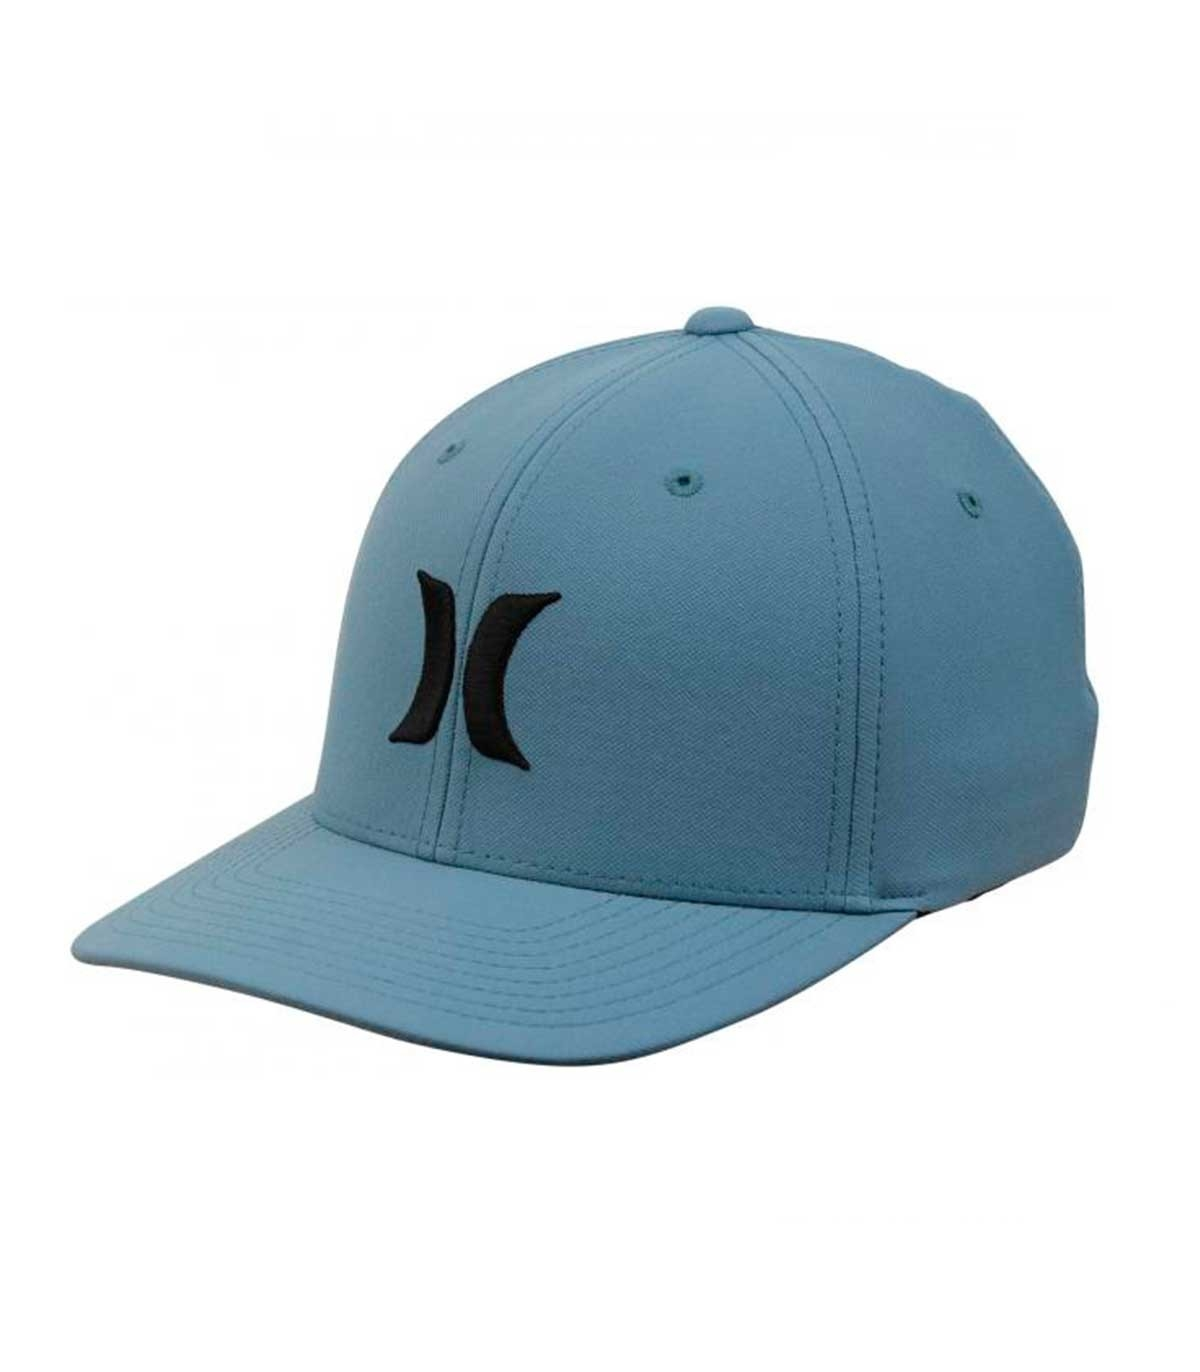 Gorra Hurley Dri-Fit One Only 2.0  e824065f6a1